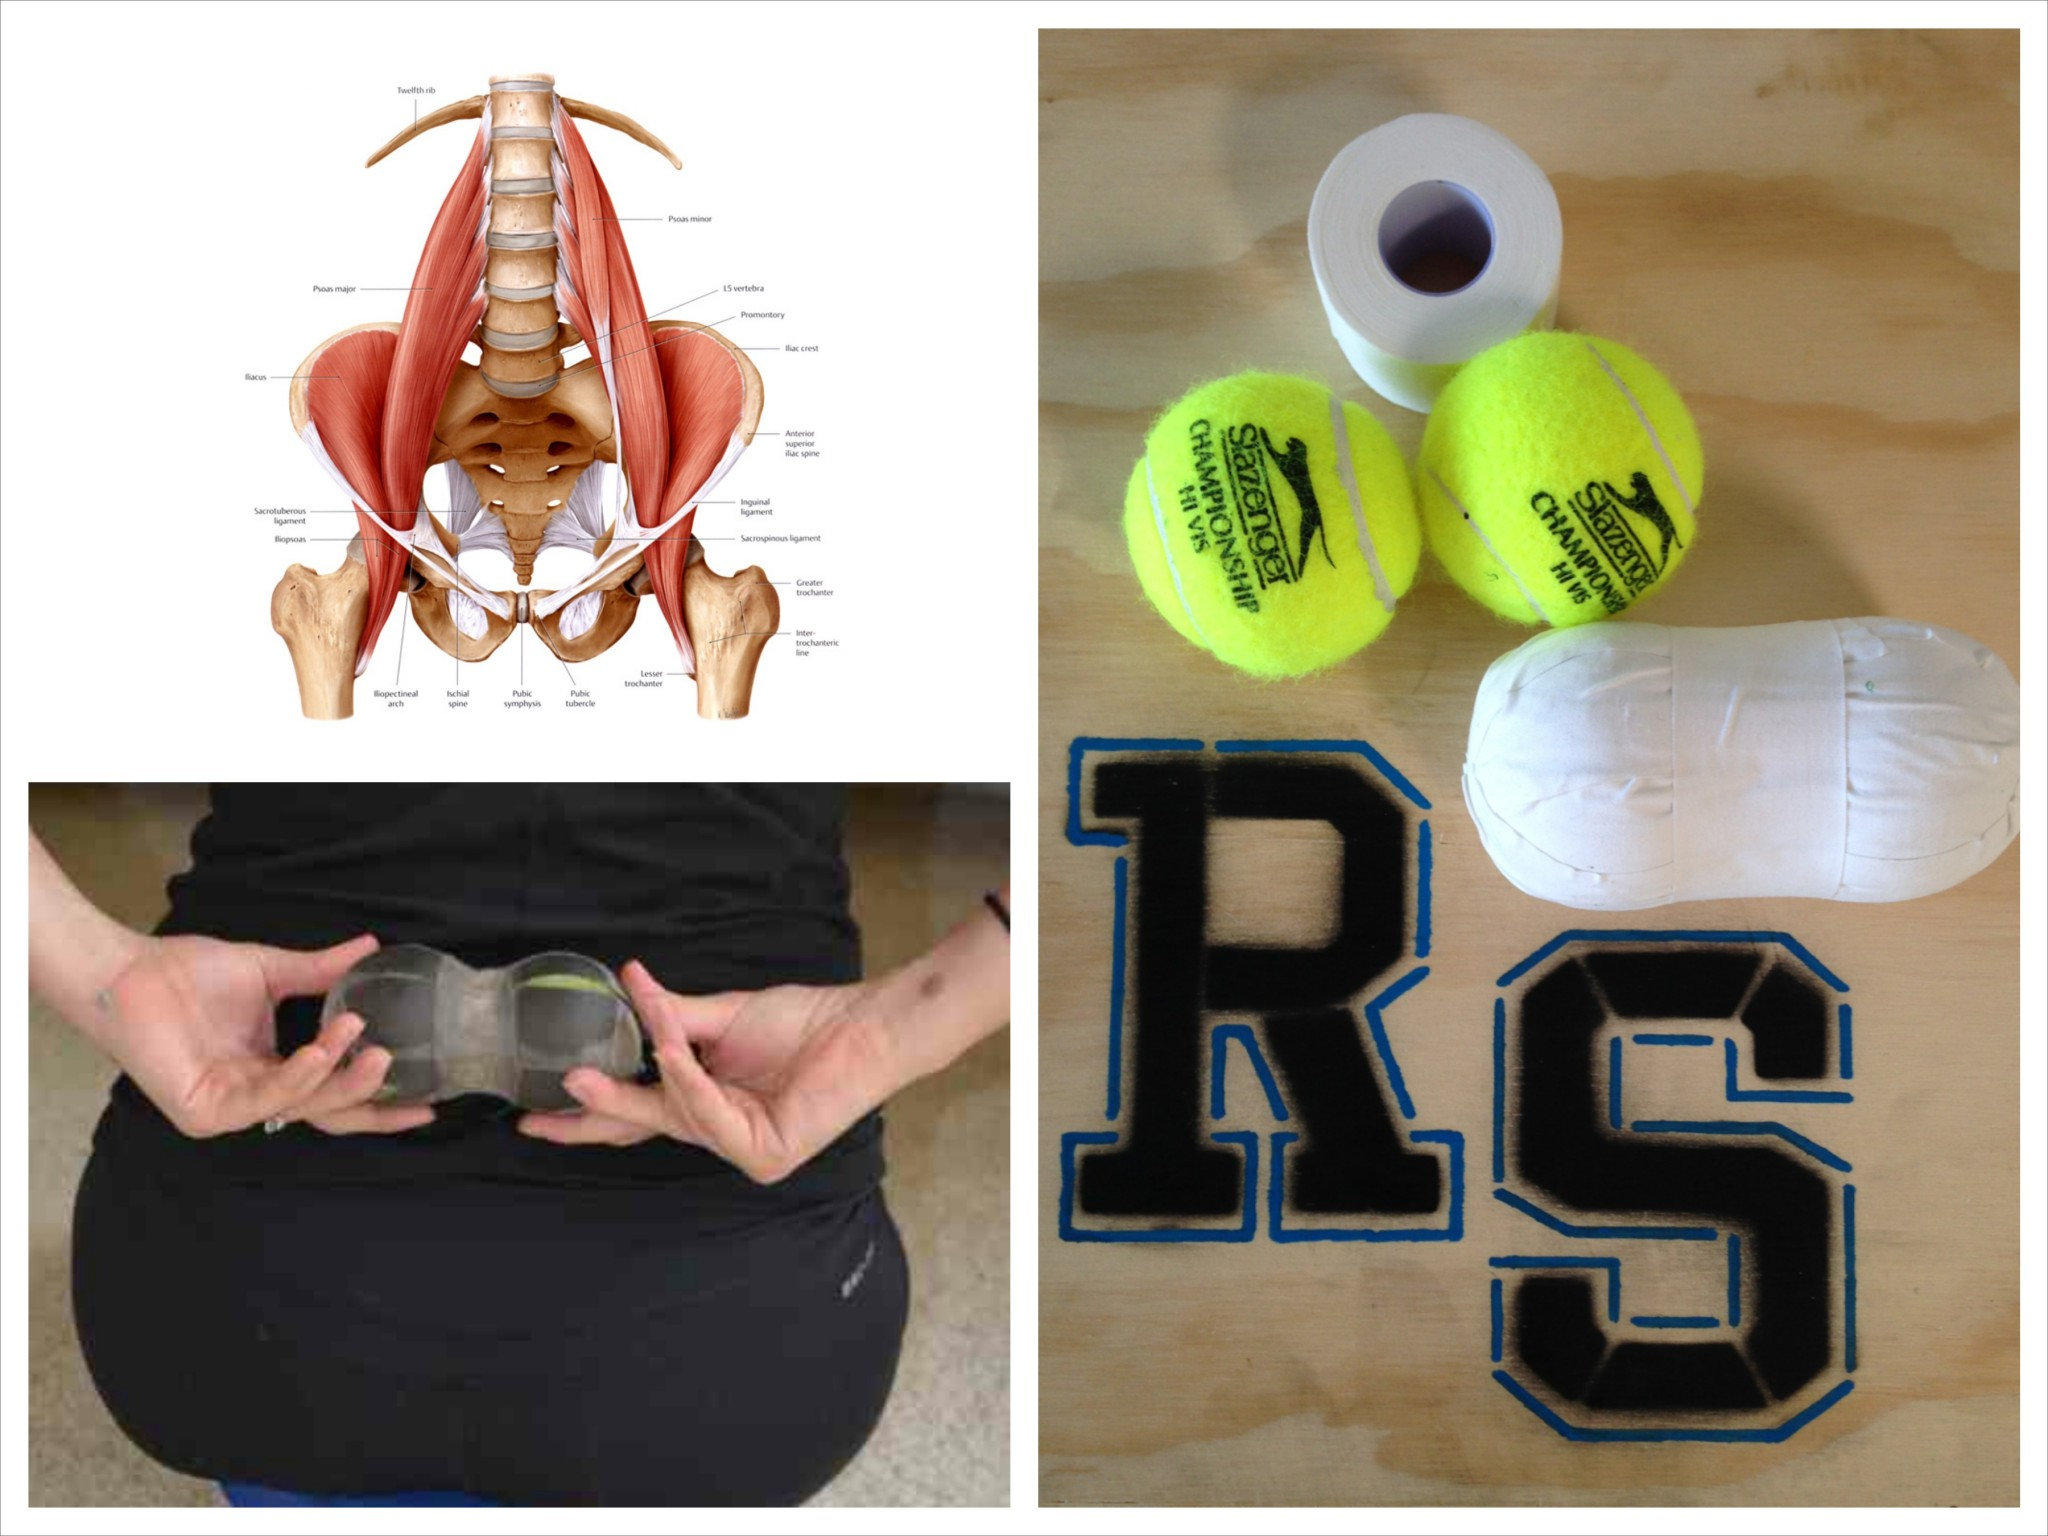 The Peanut – Alleviate back pain with this simple trigger point tool!